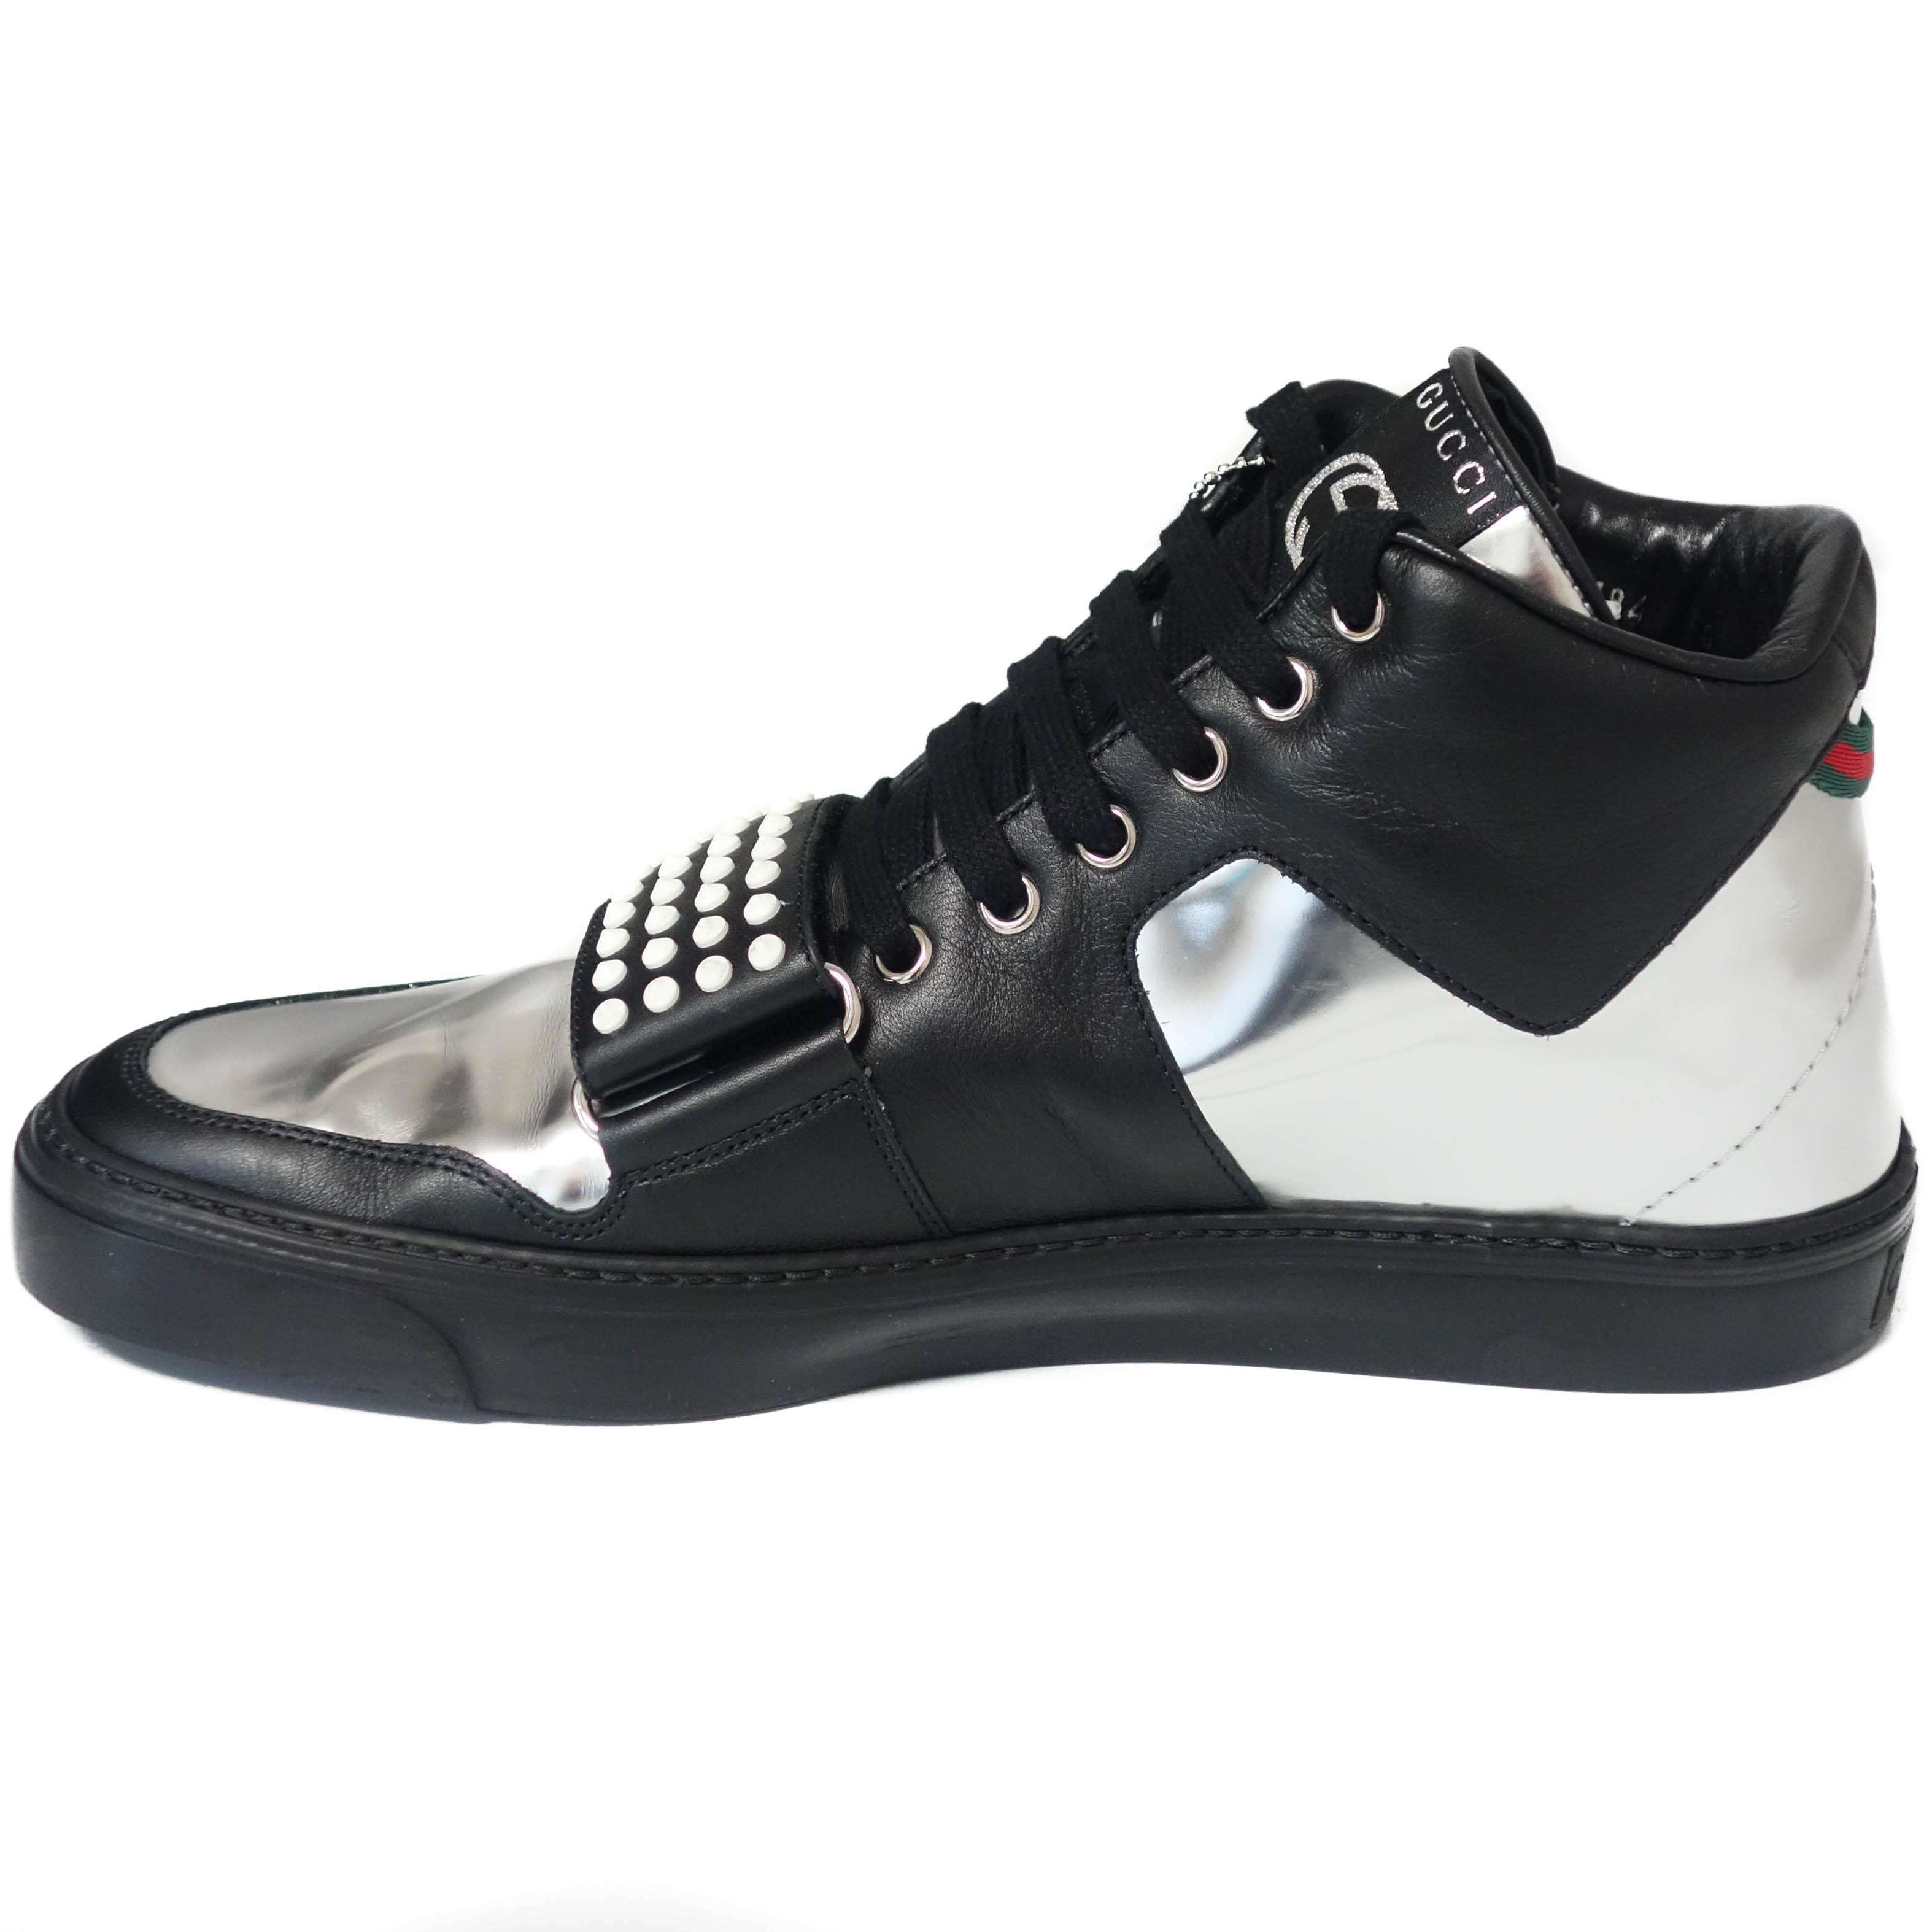 ... Gucci 376194 Sneaker Limited Edition High Top Black, Silver Athletic ...